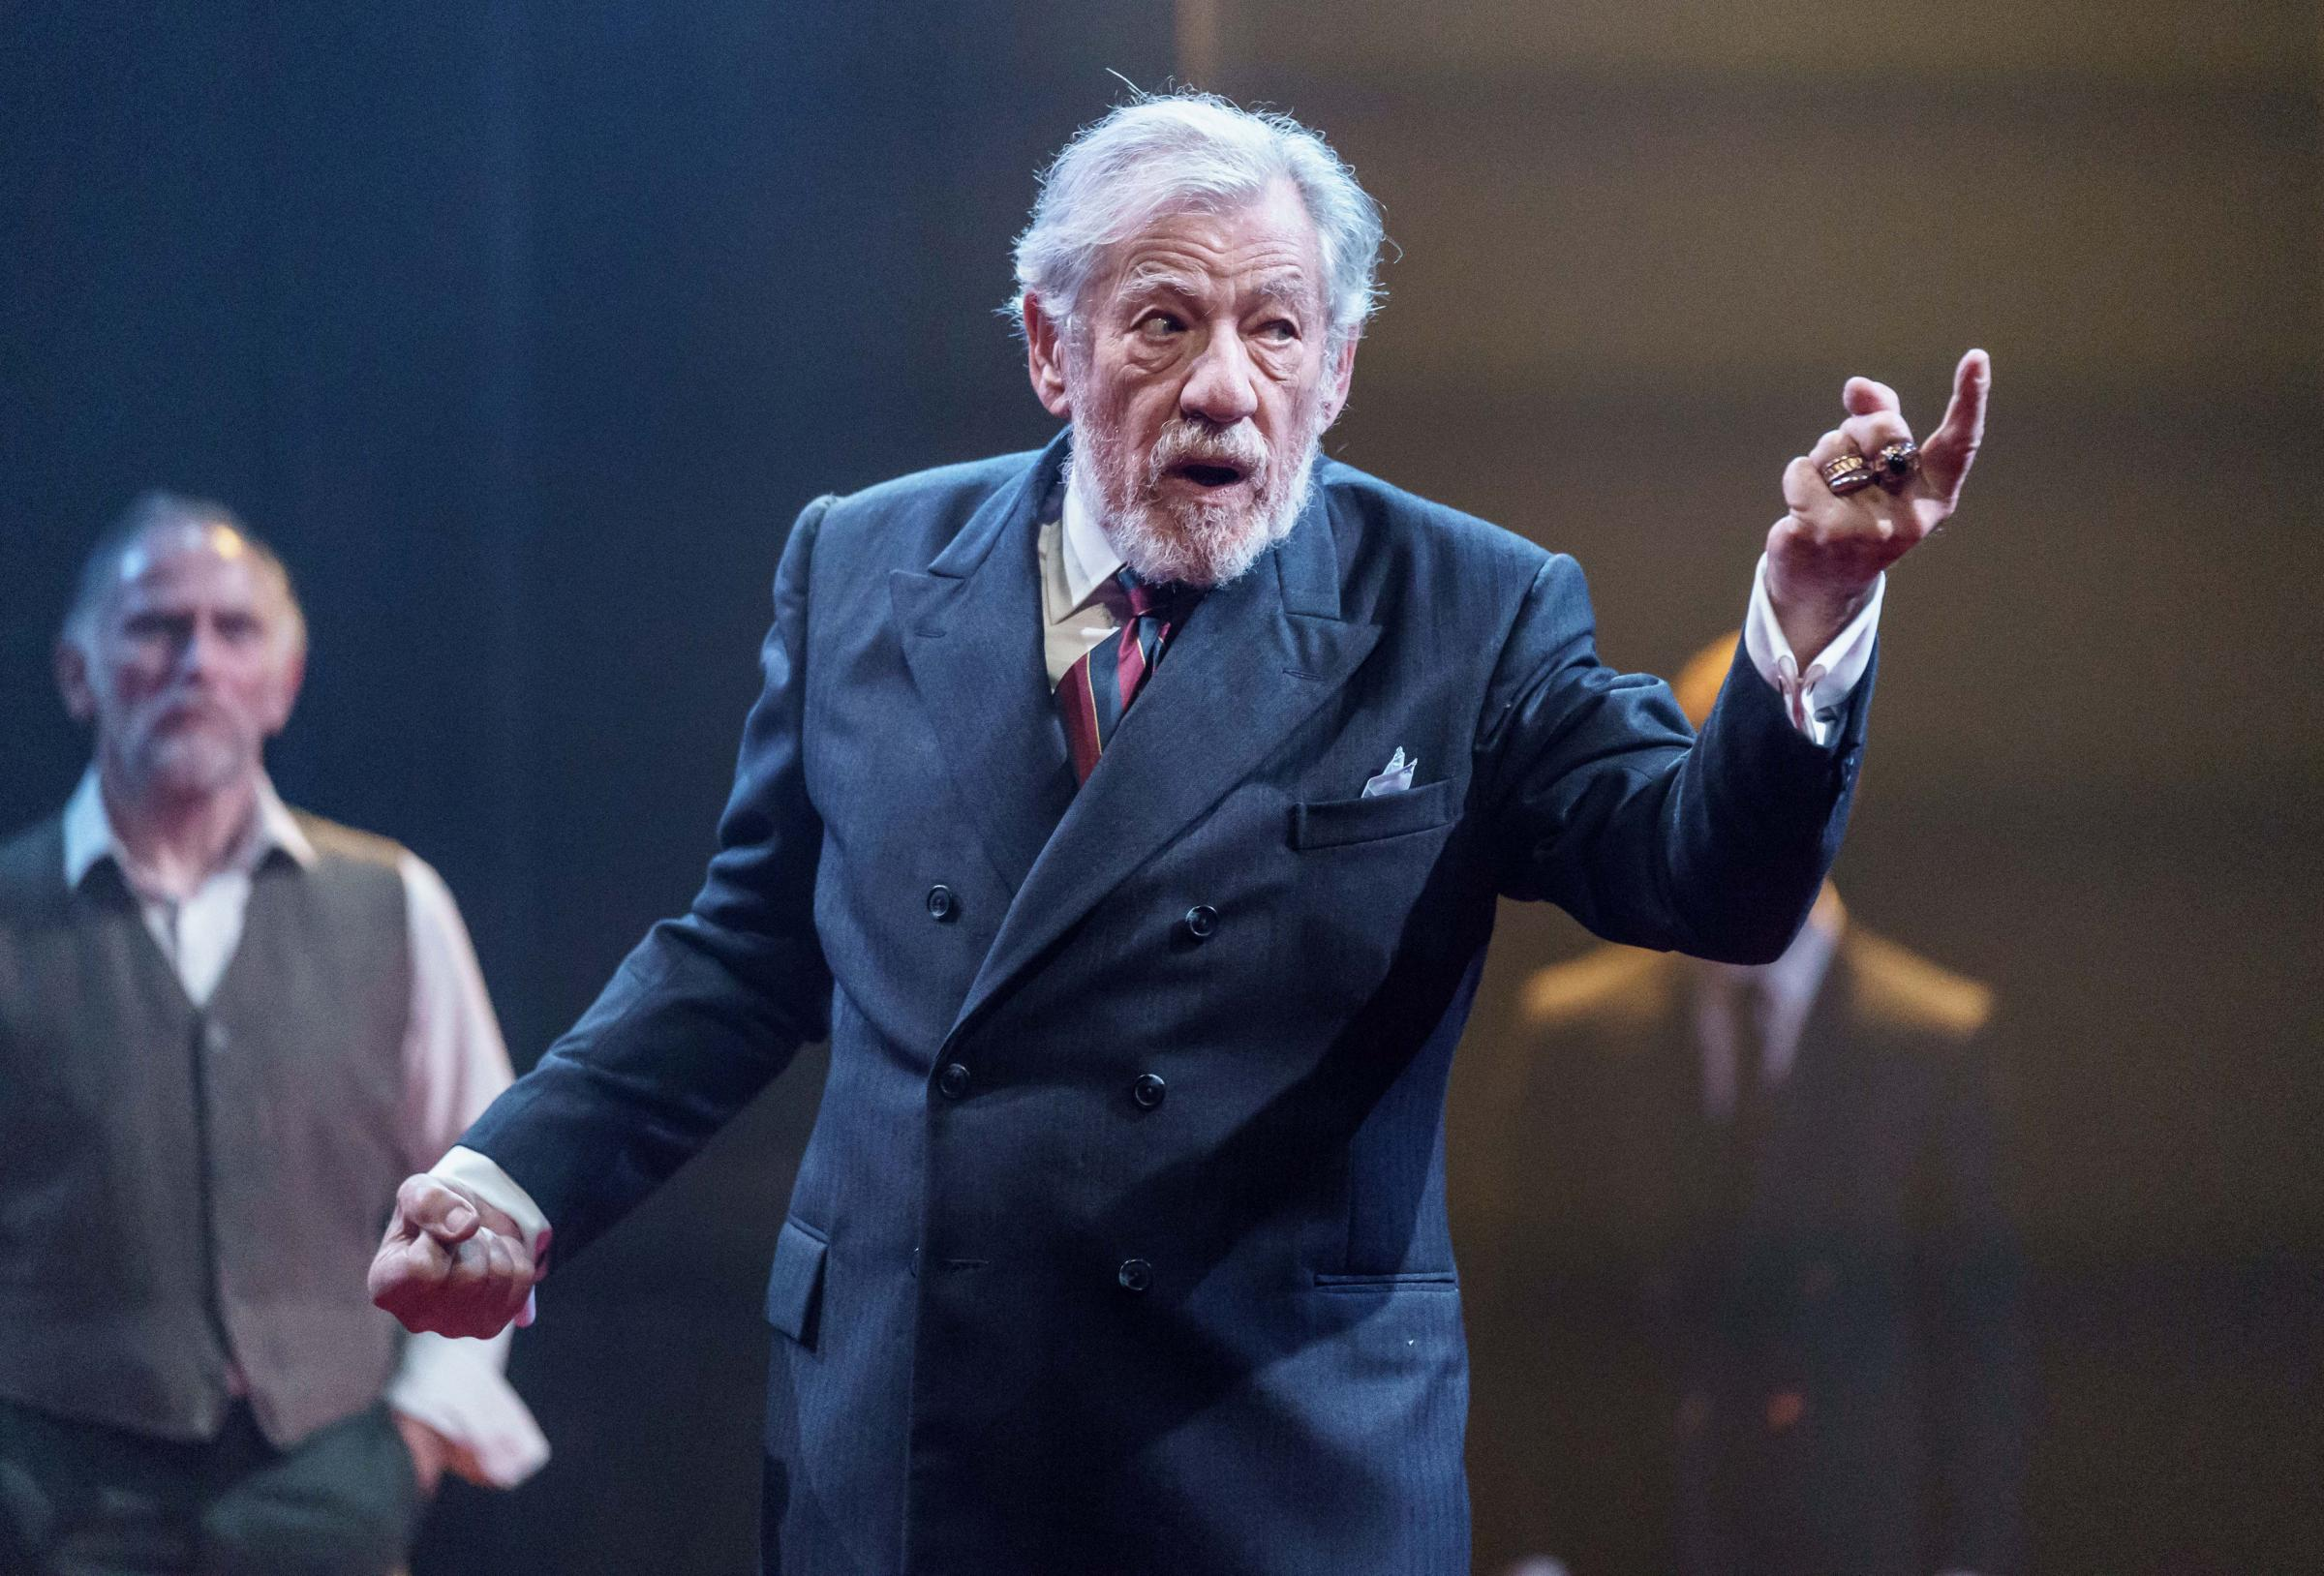 Undated handout photo of Sir Ian McKellen in the title role of King Lear at the Chichester Festival Theatre as the production is transferring to the West End to the stage where he made his West End debut. PRESS ASSOCIATION Photo. Issue date: Thursday Febr